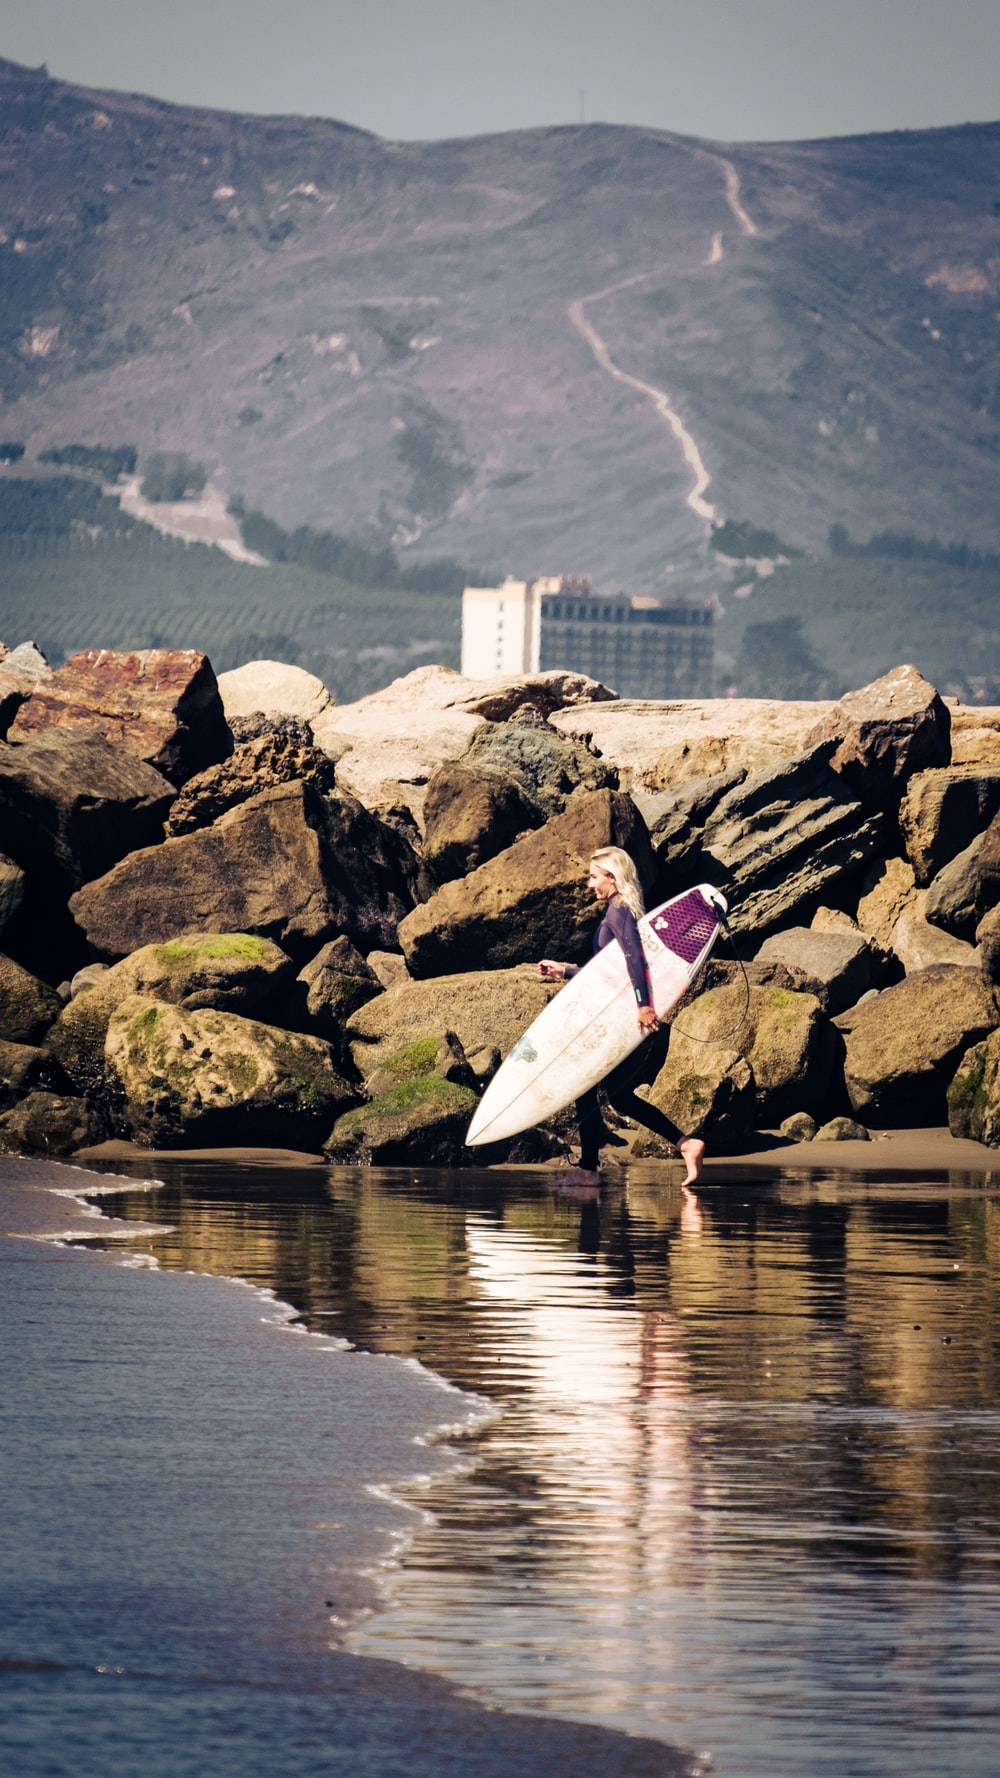 woman in pink long sleeve shirt and white pants holding white surfboard standing on rocky shore